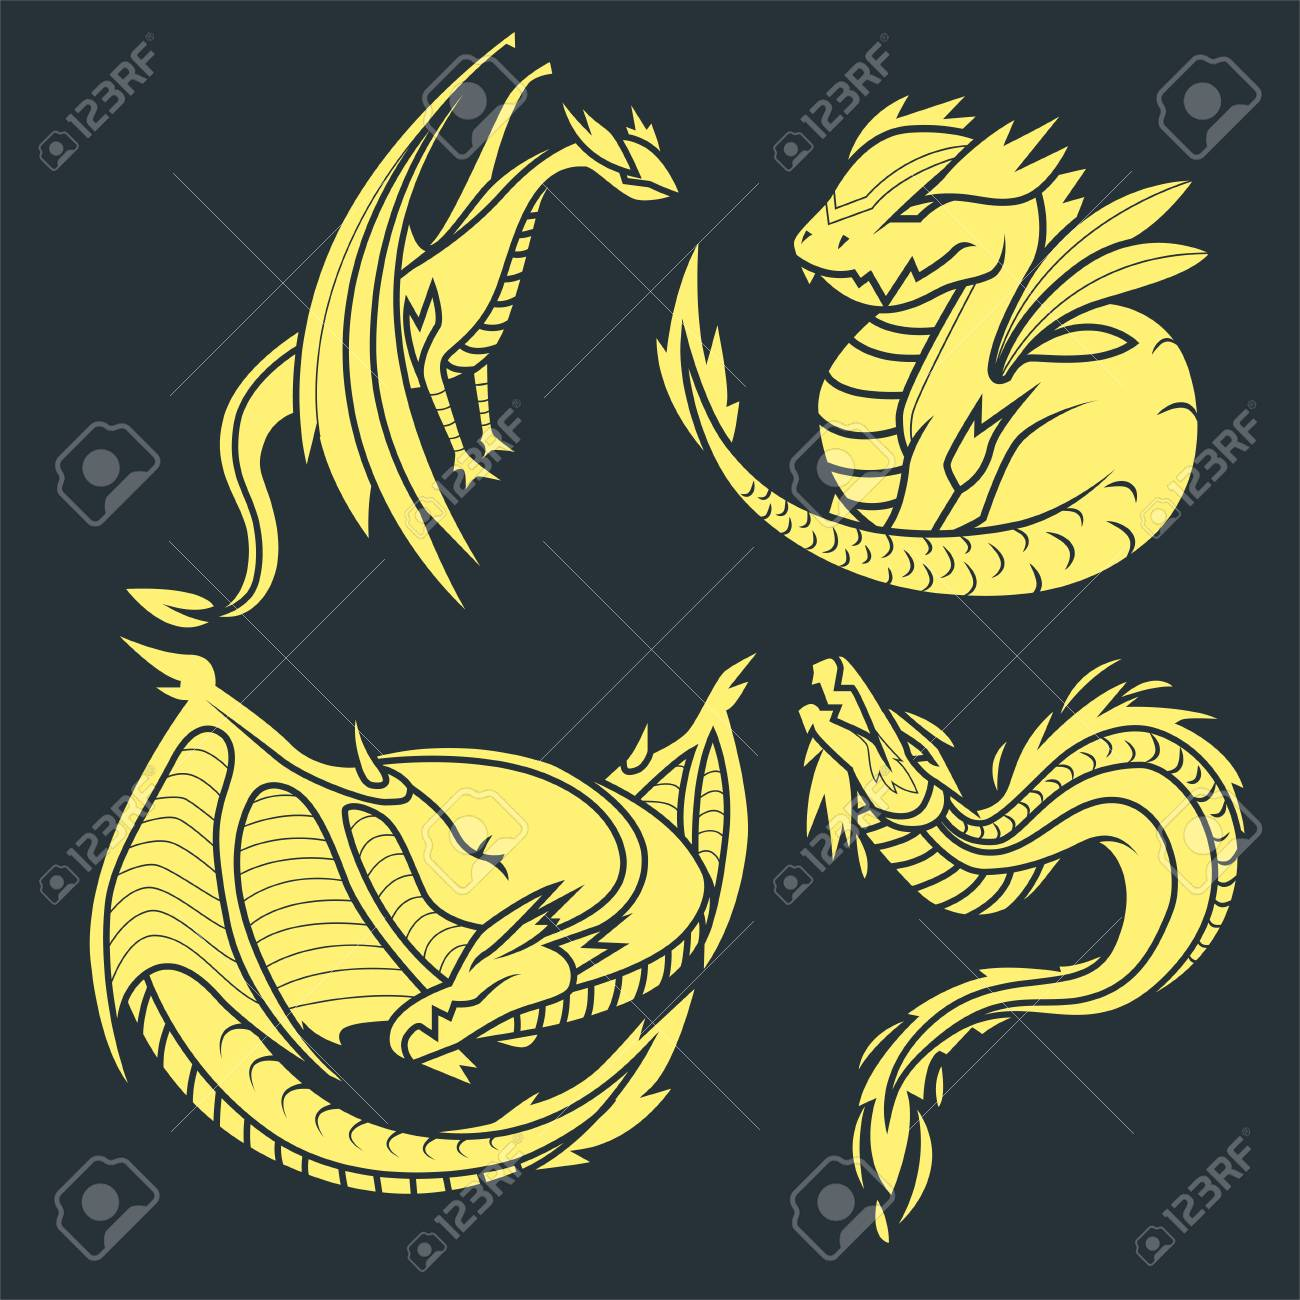 Chinese Dragon Silhouettes Tattoo Mythology Tail Monster Magic